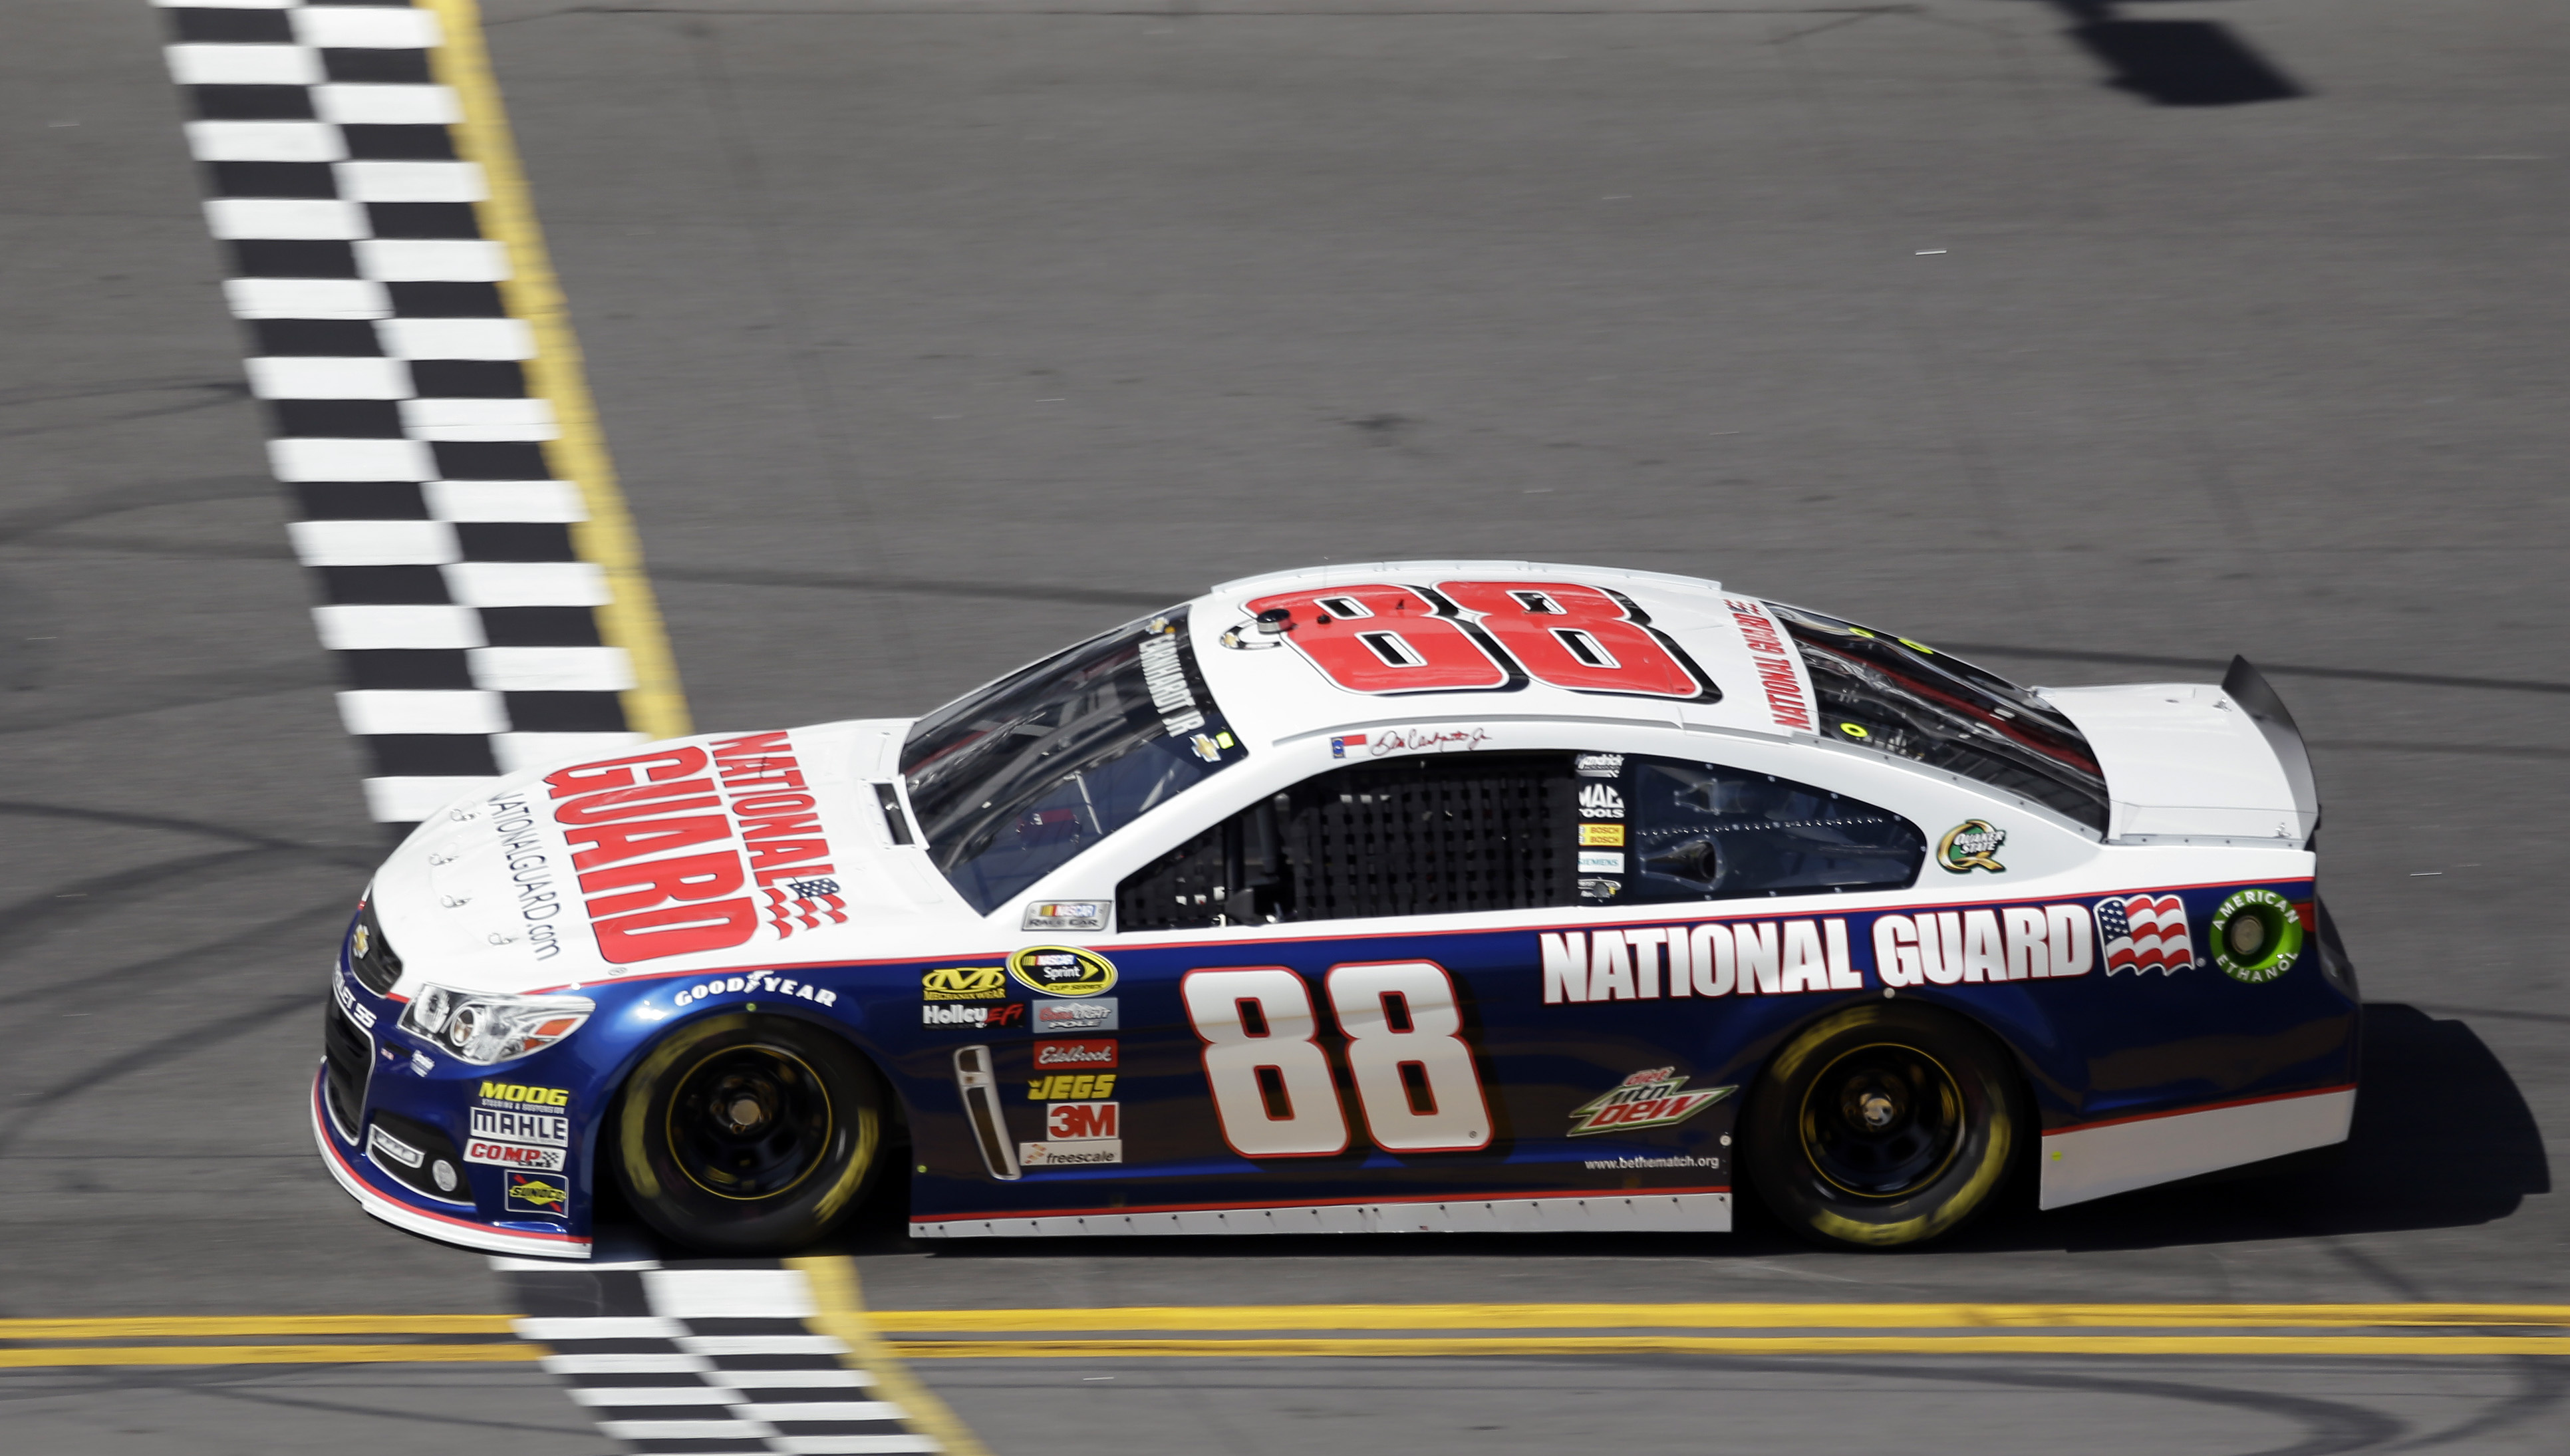 Nascar Drivers Cheer Generation 6 Cars The Spokesman